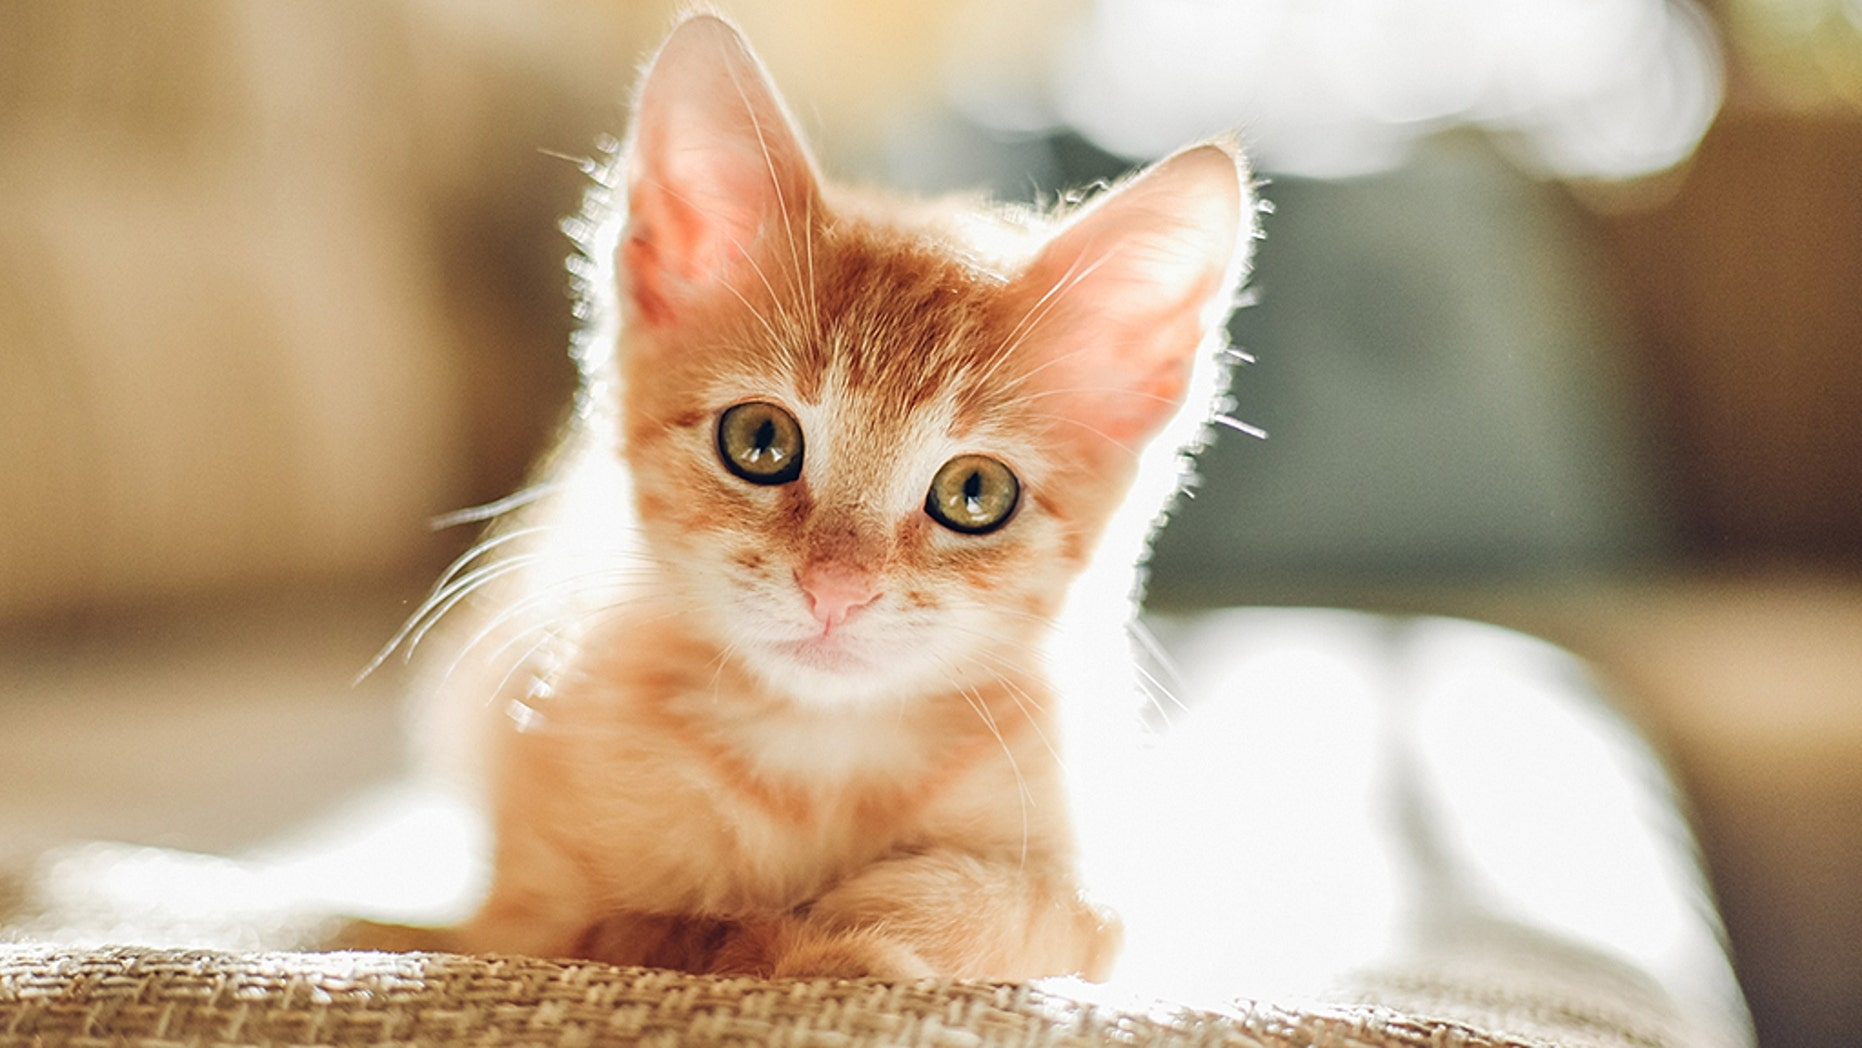 A kitten bite led to a nearly $50,000 medical bill for one Florida woman. (iStock)